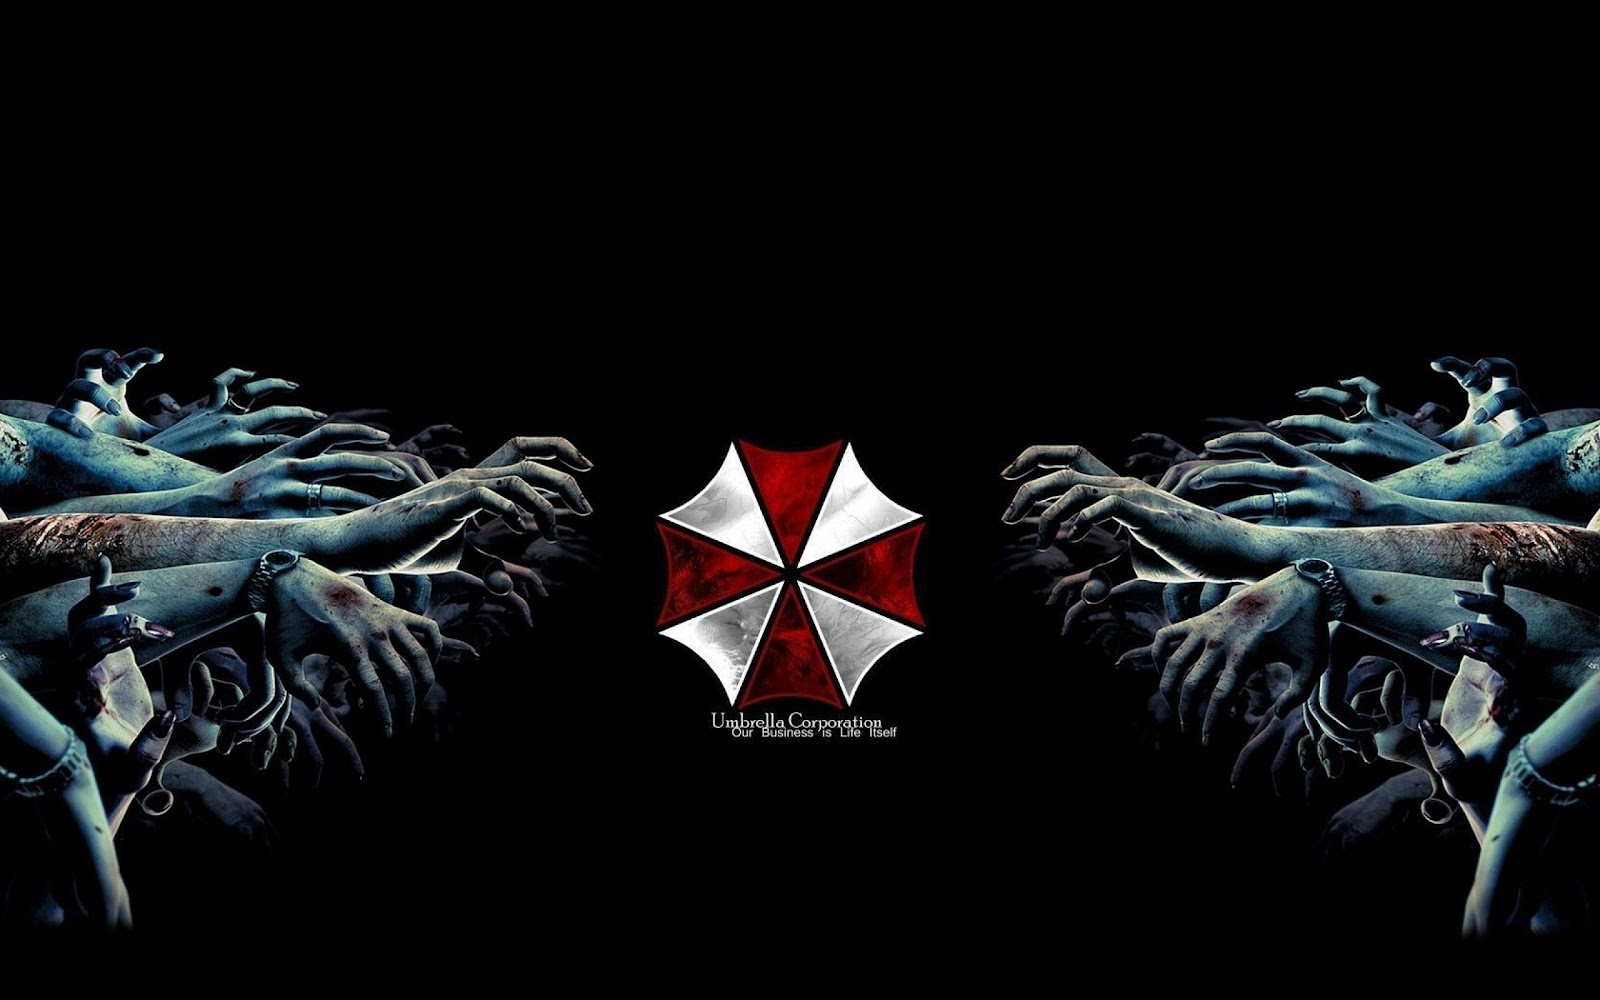 Umbrella Corporation Wallpaper